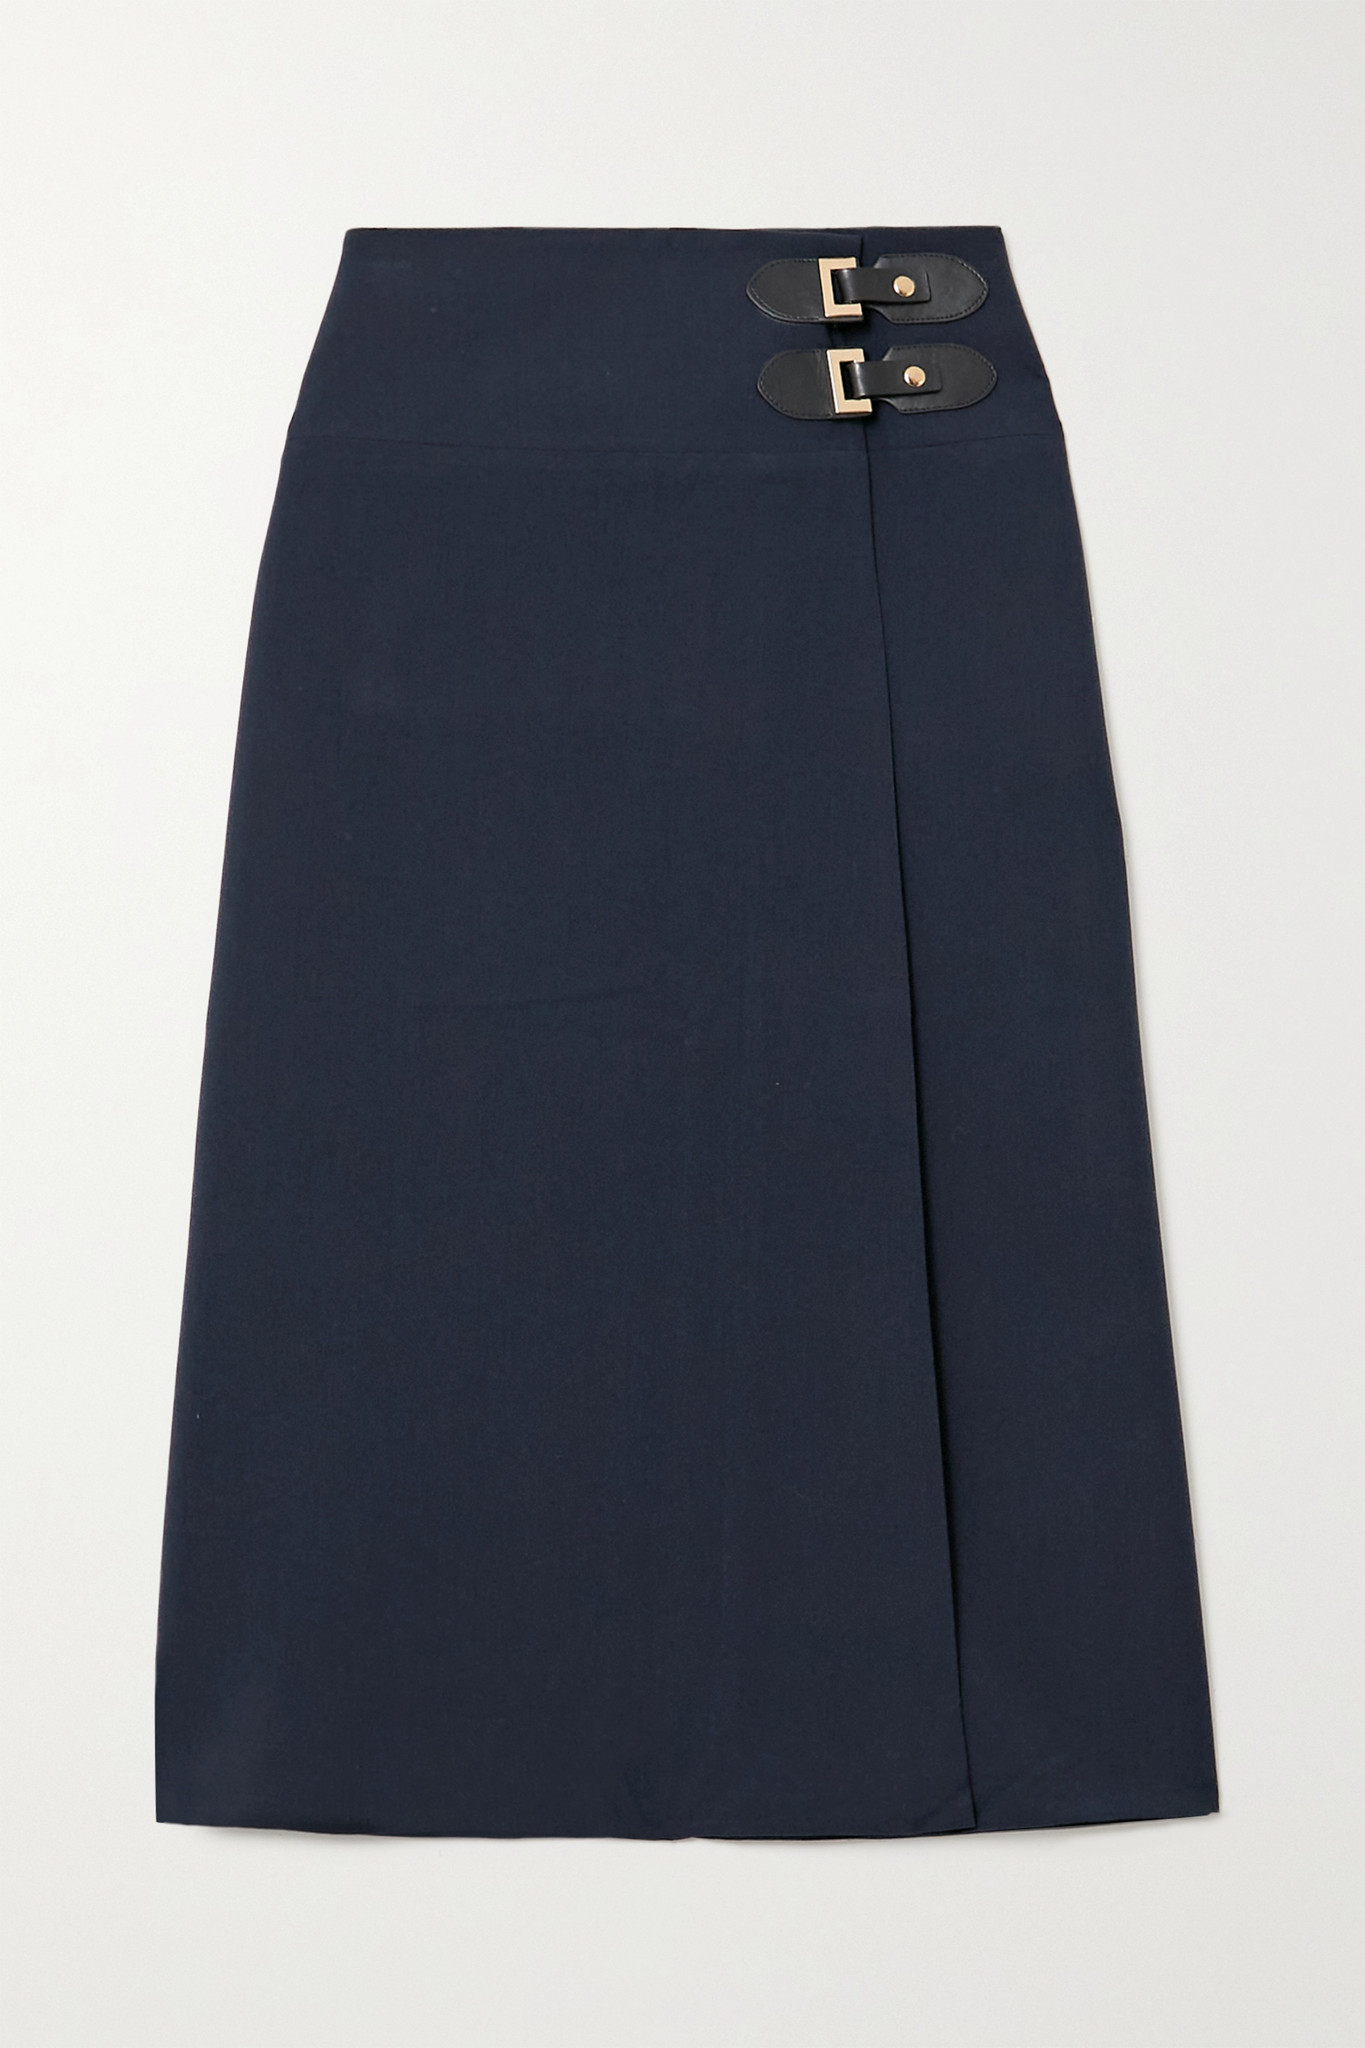 ÀCHEVAL PAMPA - Volada Leather-trimmed Woven Wrap Skirt - Blue - small